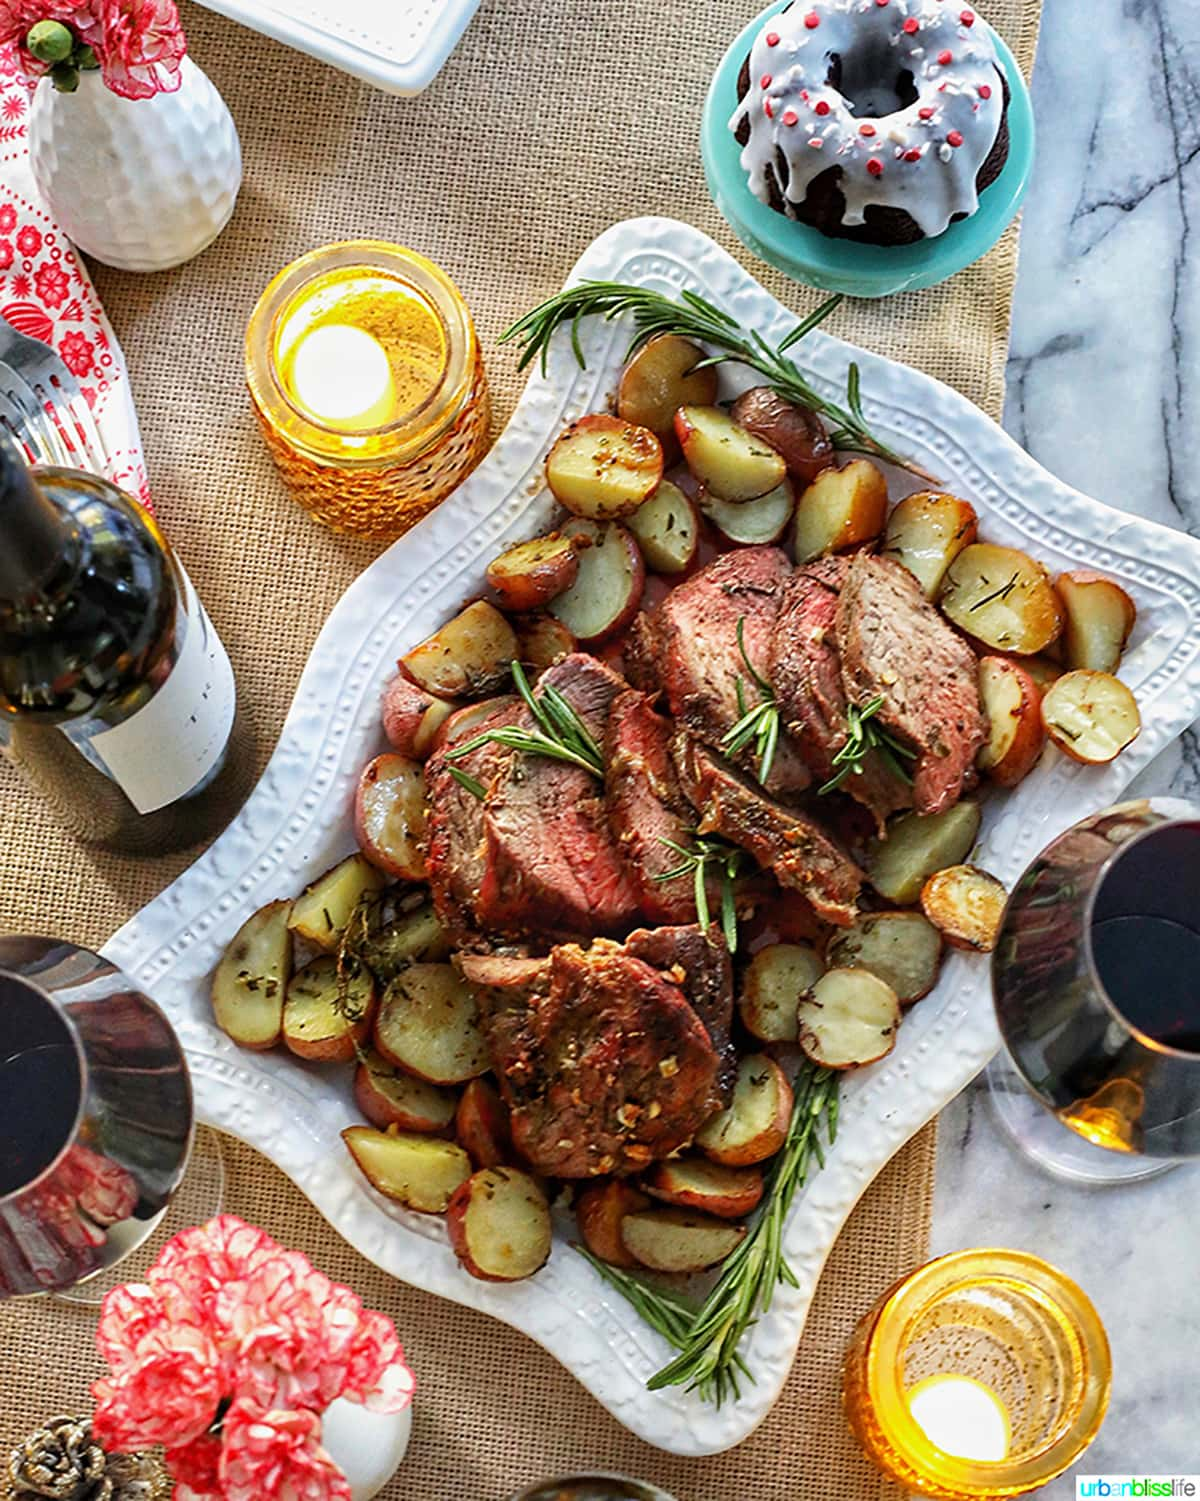 beef roast on white platter with wine glasses and candles